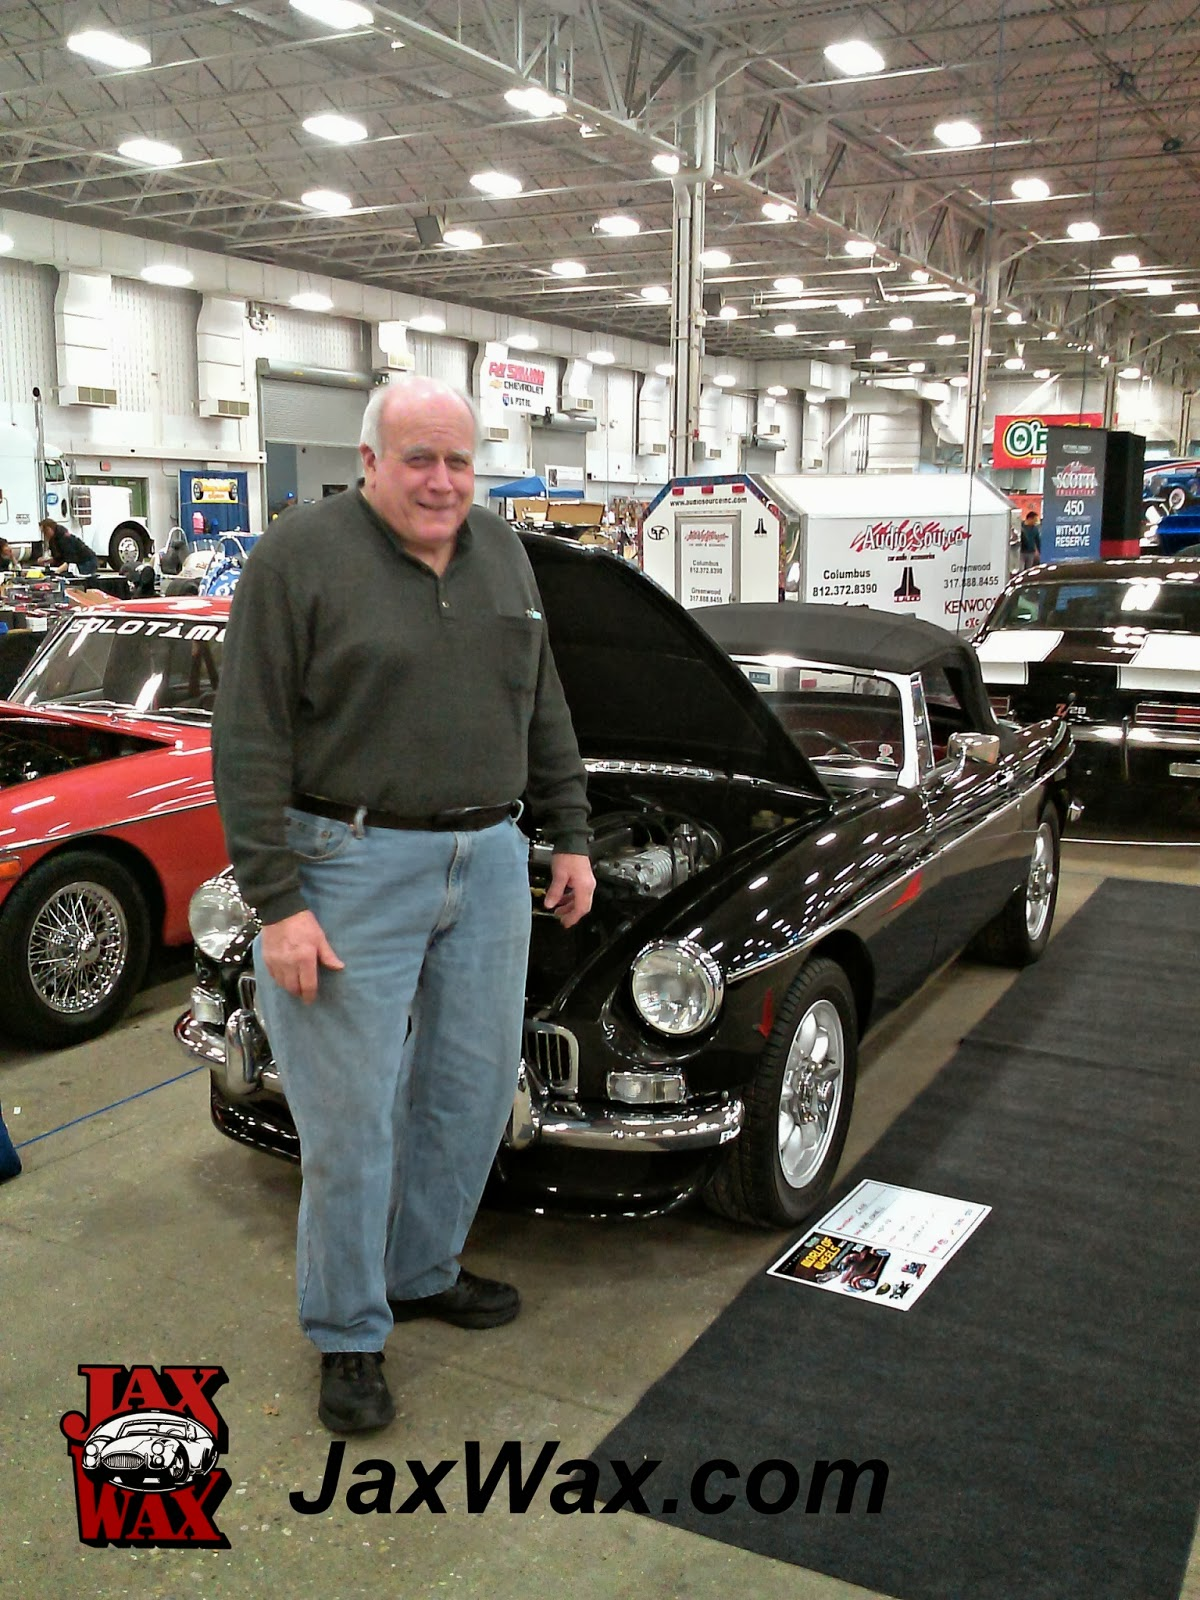 1964 MGB Indianapolis World of Wheels Jax Wax Customer